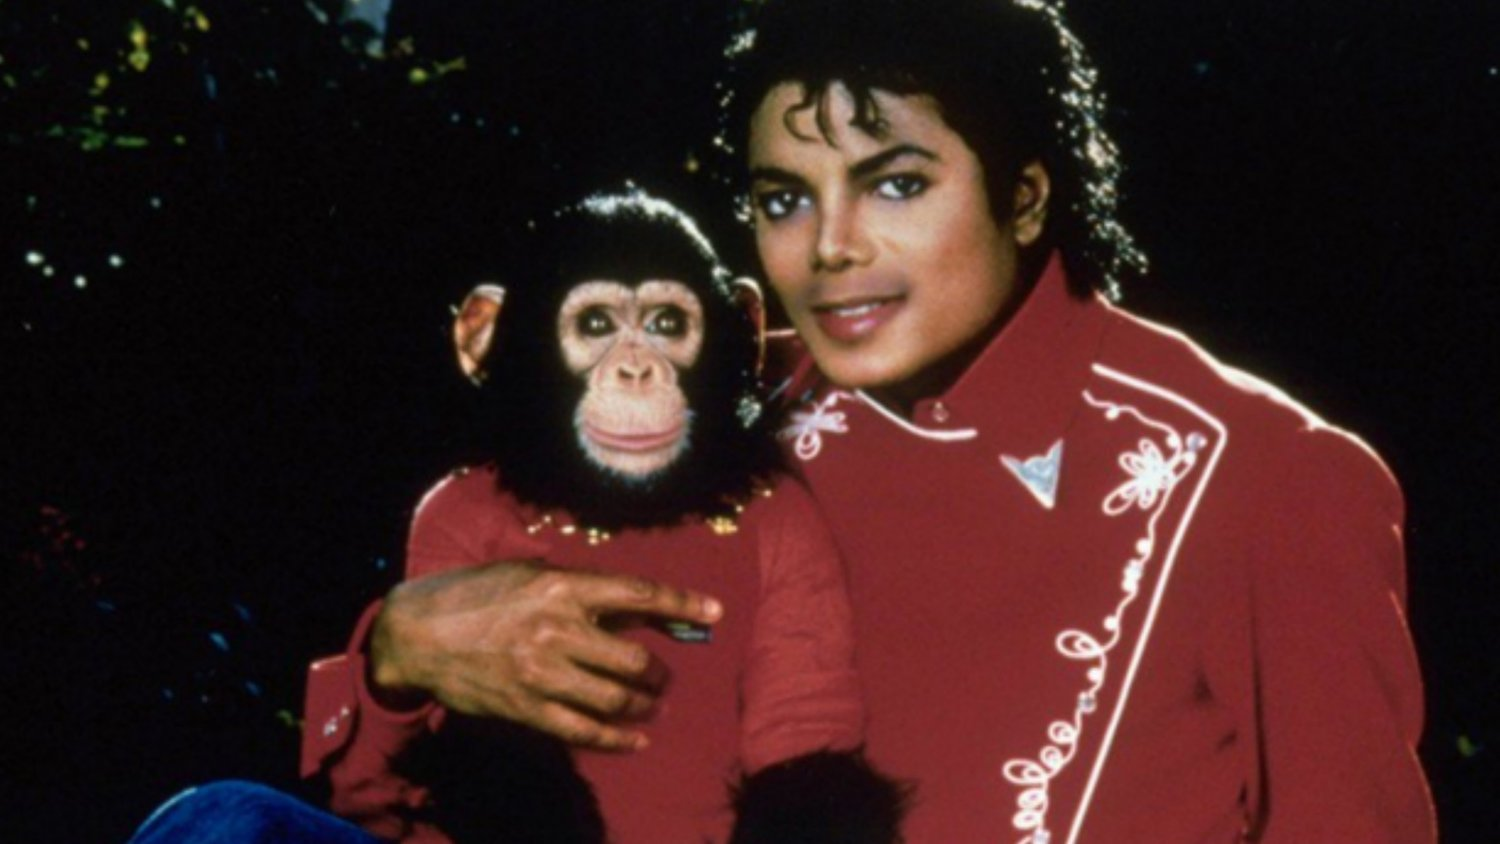 THOR: RAGNAROK Director Taika Waititi to Helm a Film Based on Michael Jackson's Chimp BUBBLES